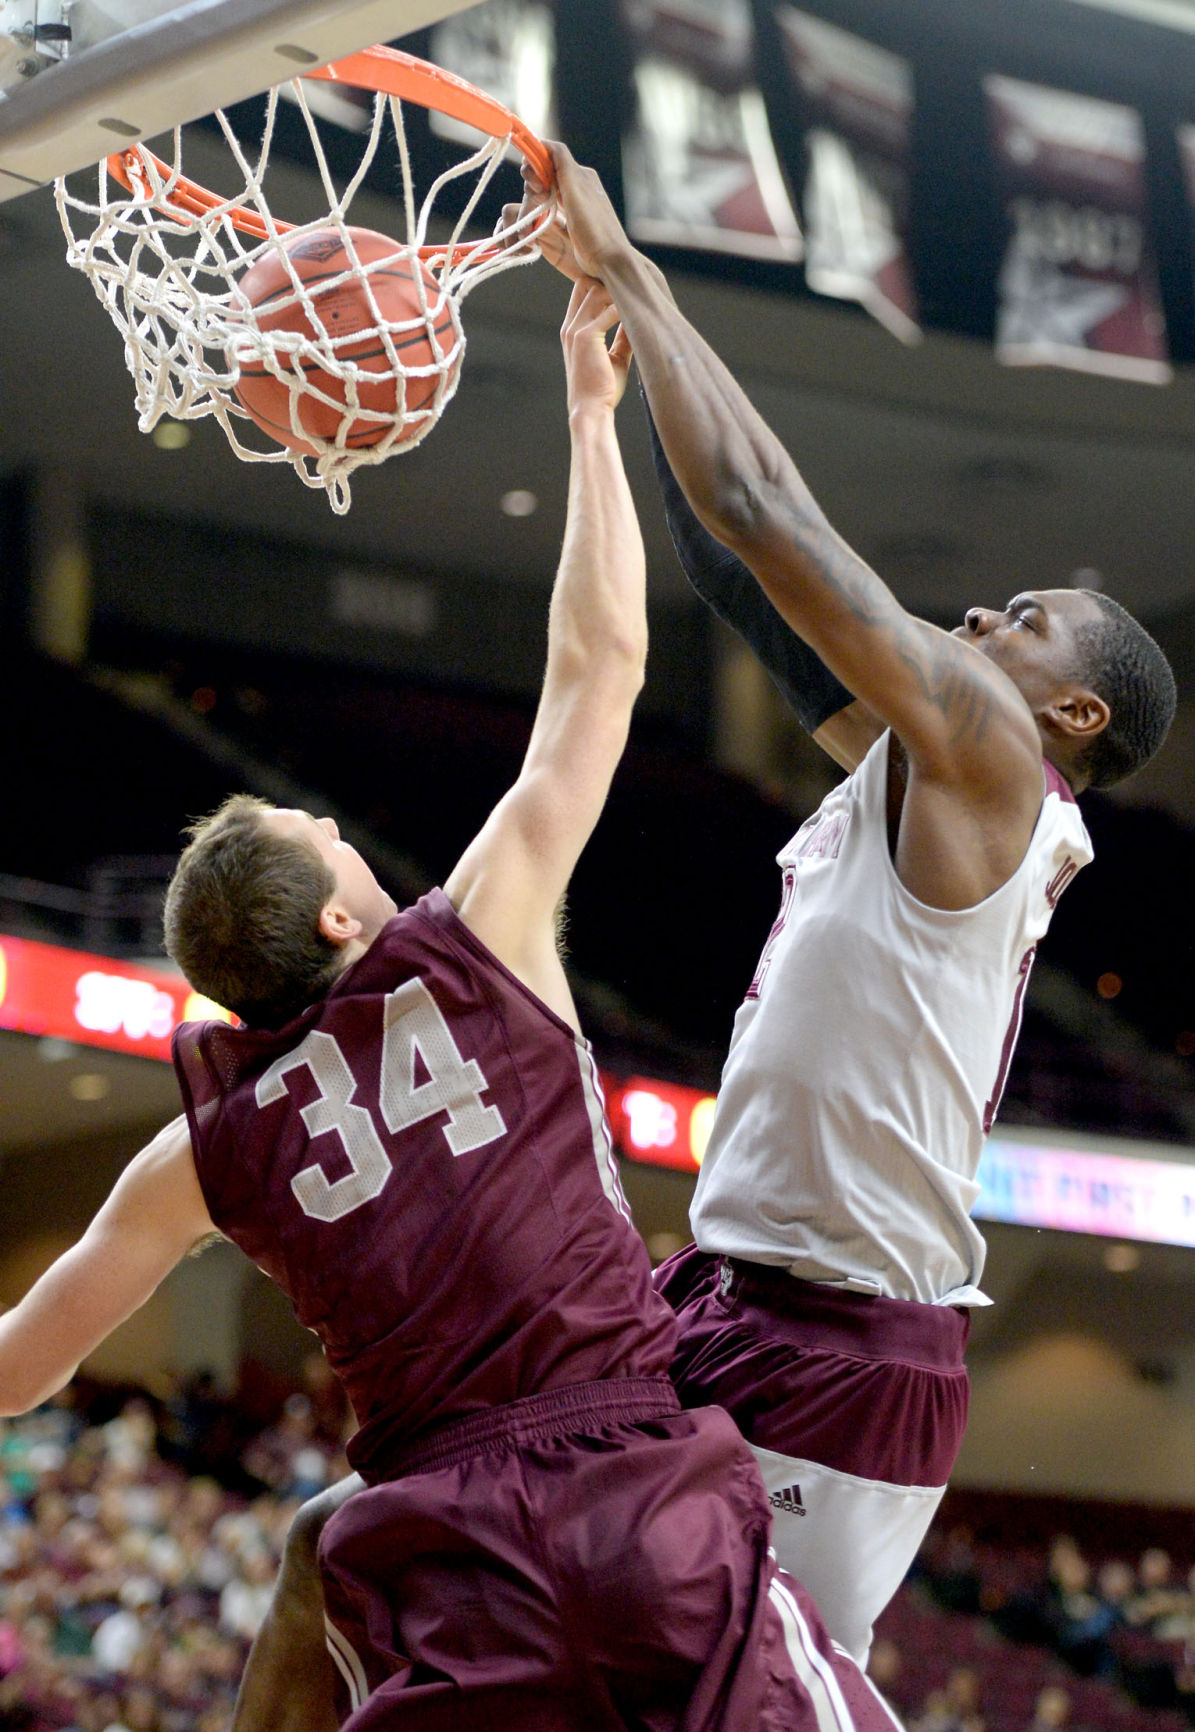 Texas A&M's second-round NIT game set for 6 p.m. Monday